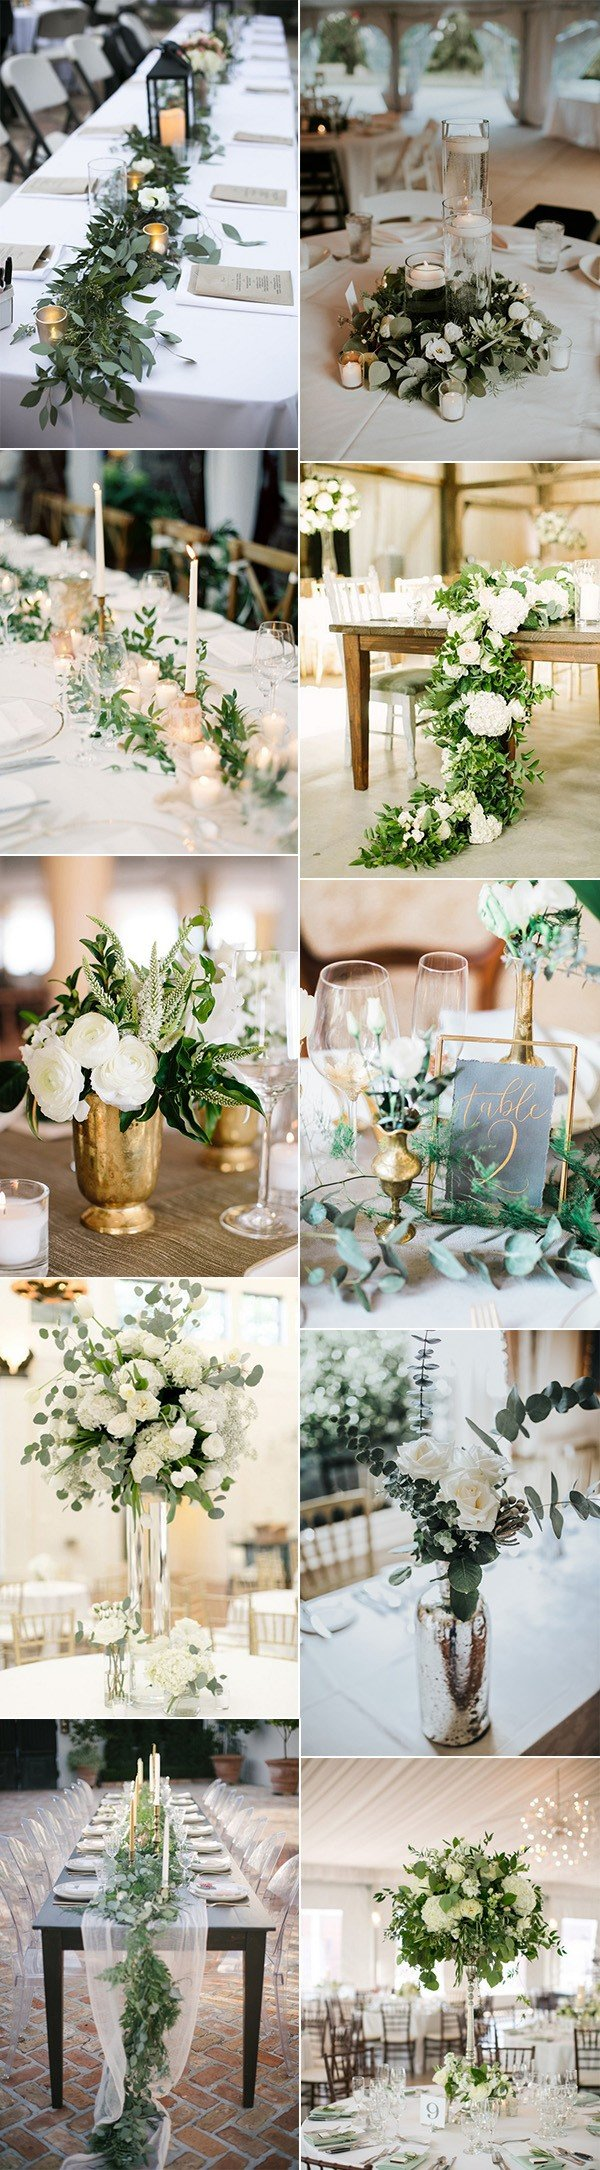 trending greenery wedding centerpiece ideas